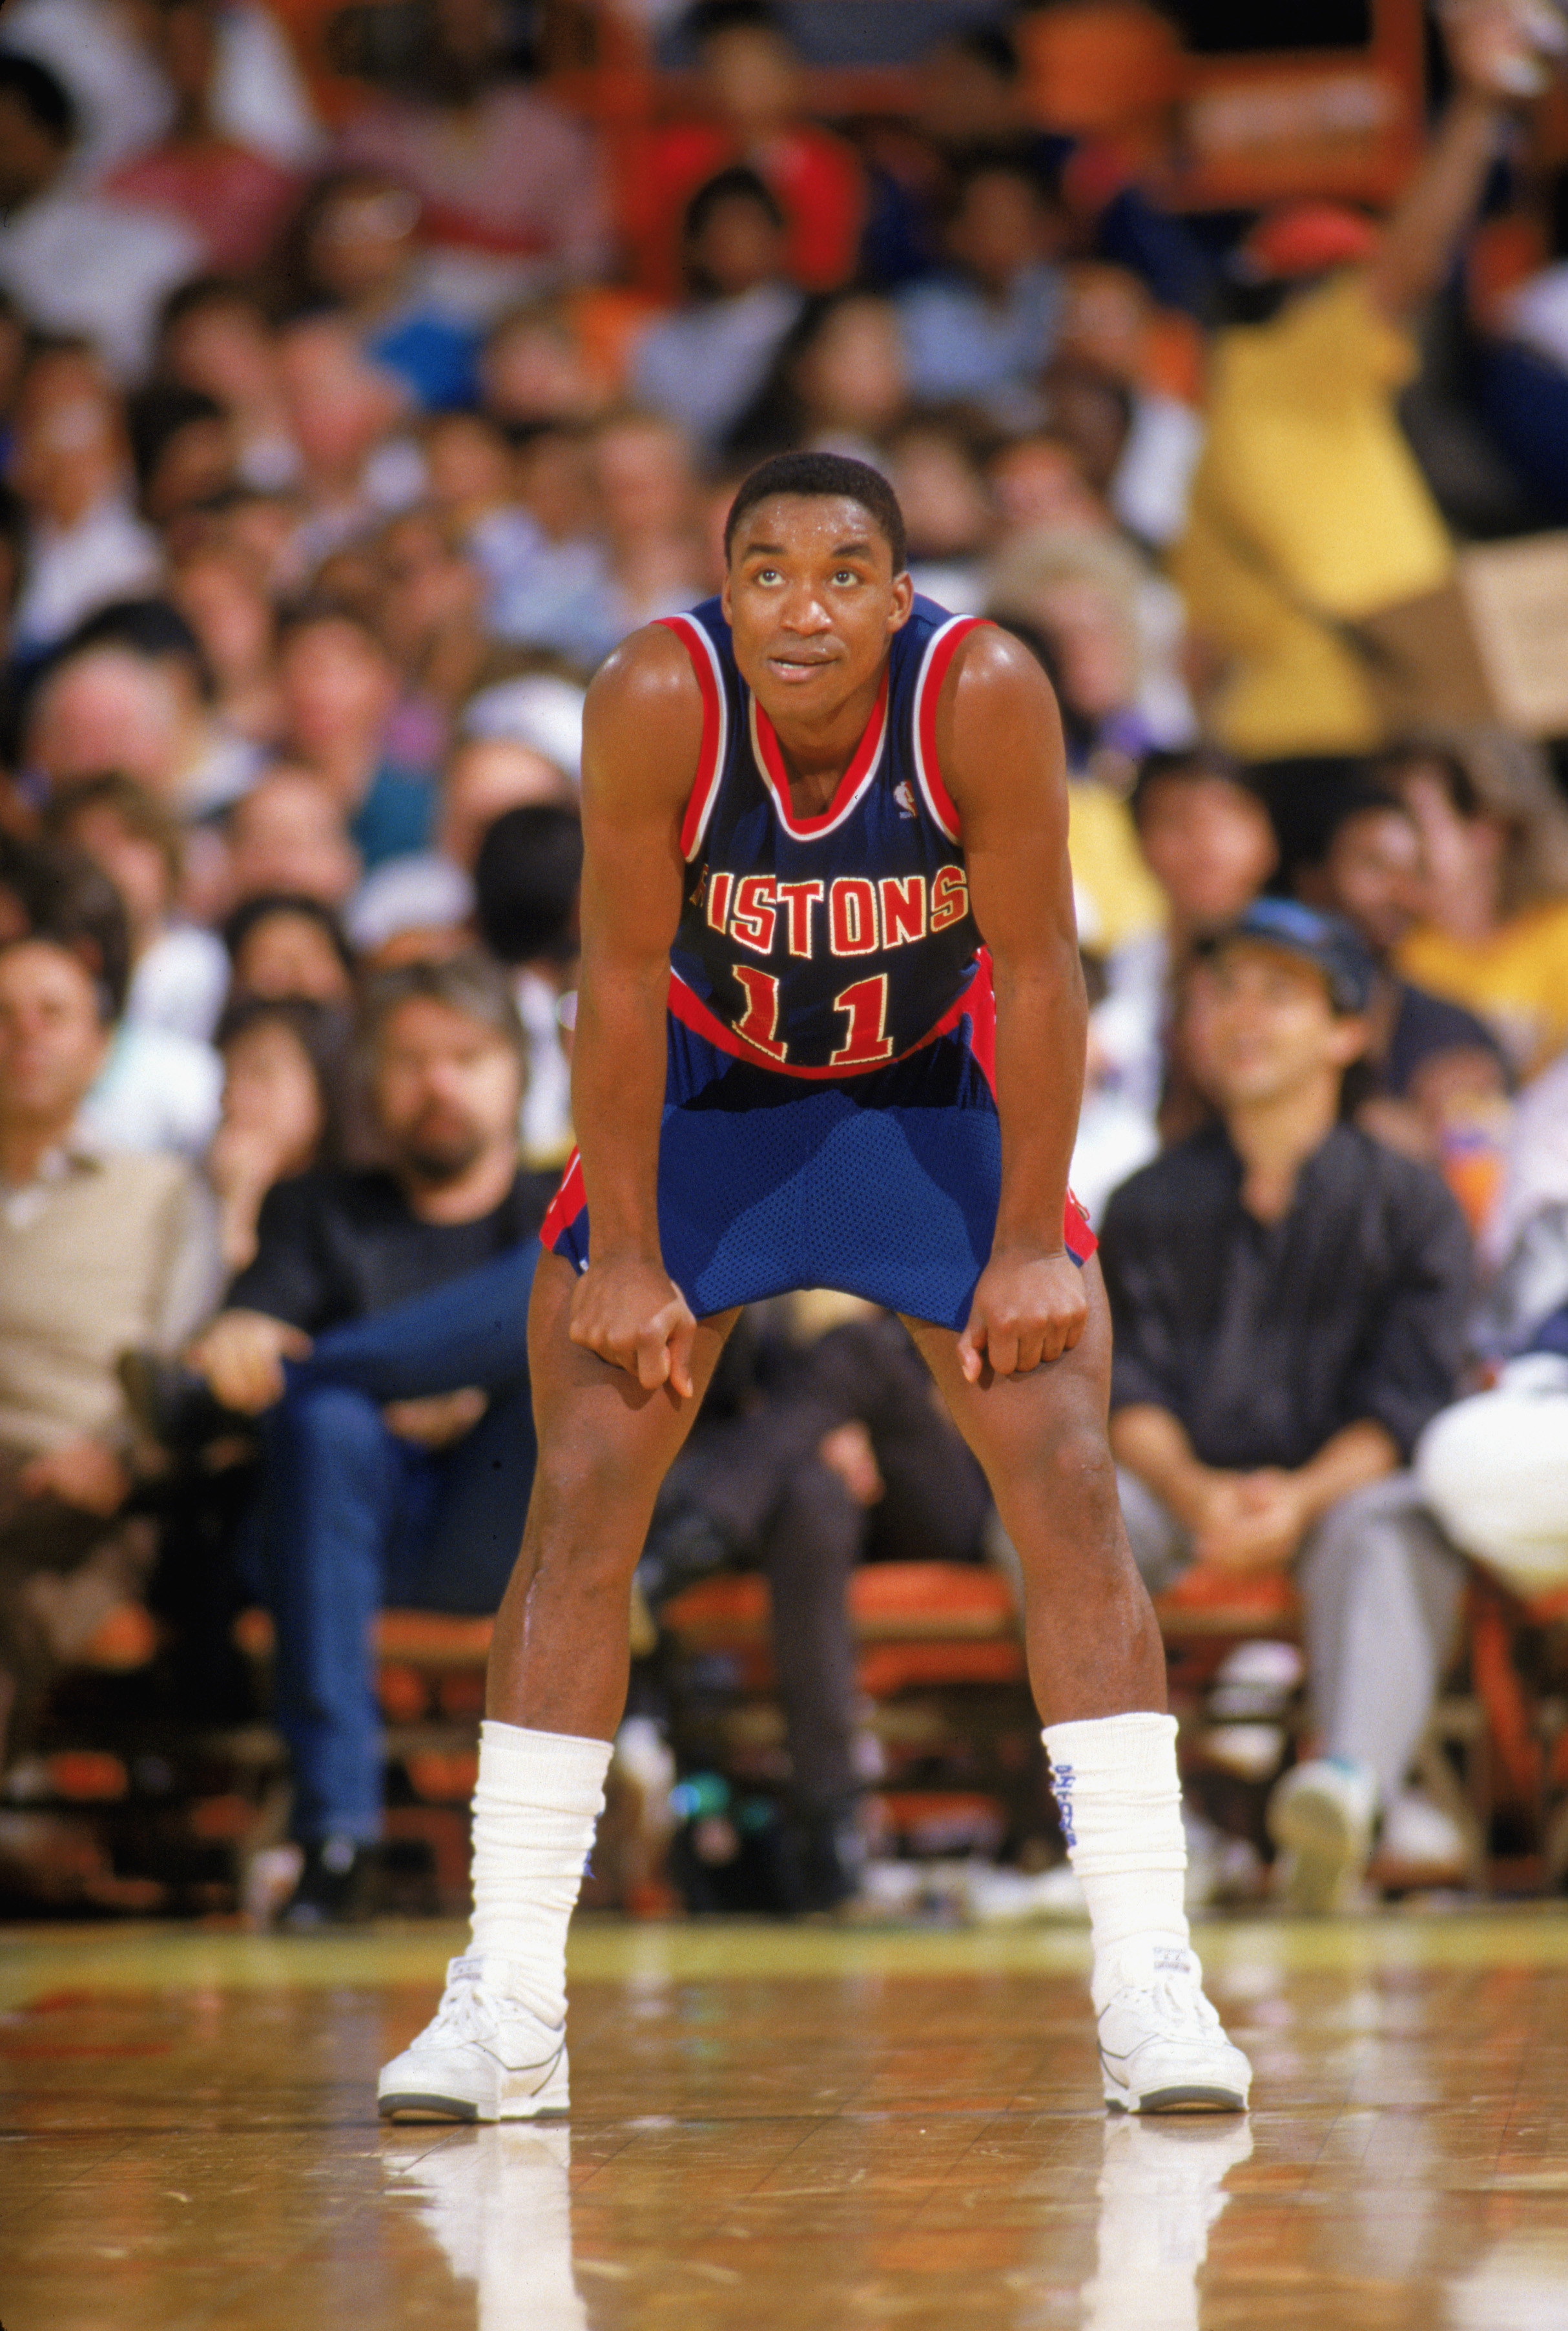 1987:  Isiah Thomas #11 of the Detroit Pistons looks on as he waits for play during a game in the 1987-1988 NBA season.  (Photo by Rick Stewart/Getty Images)